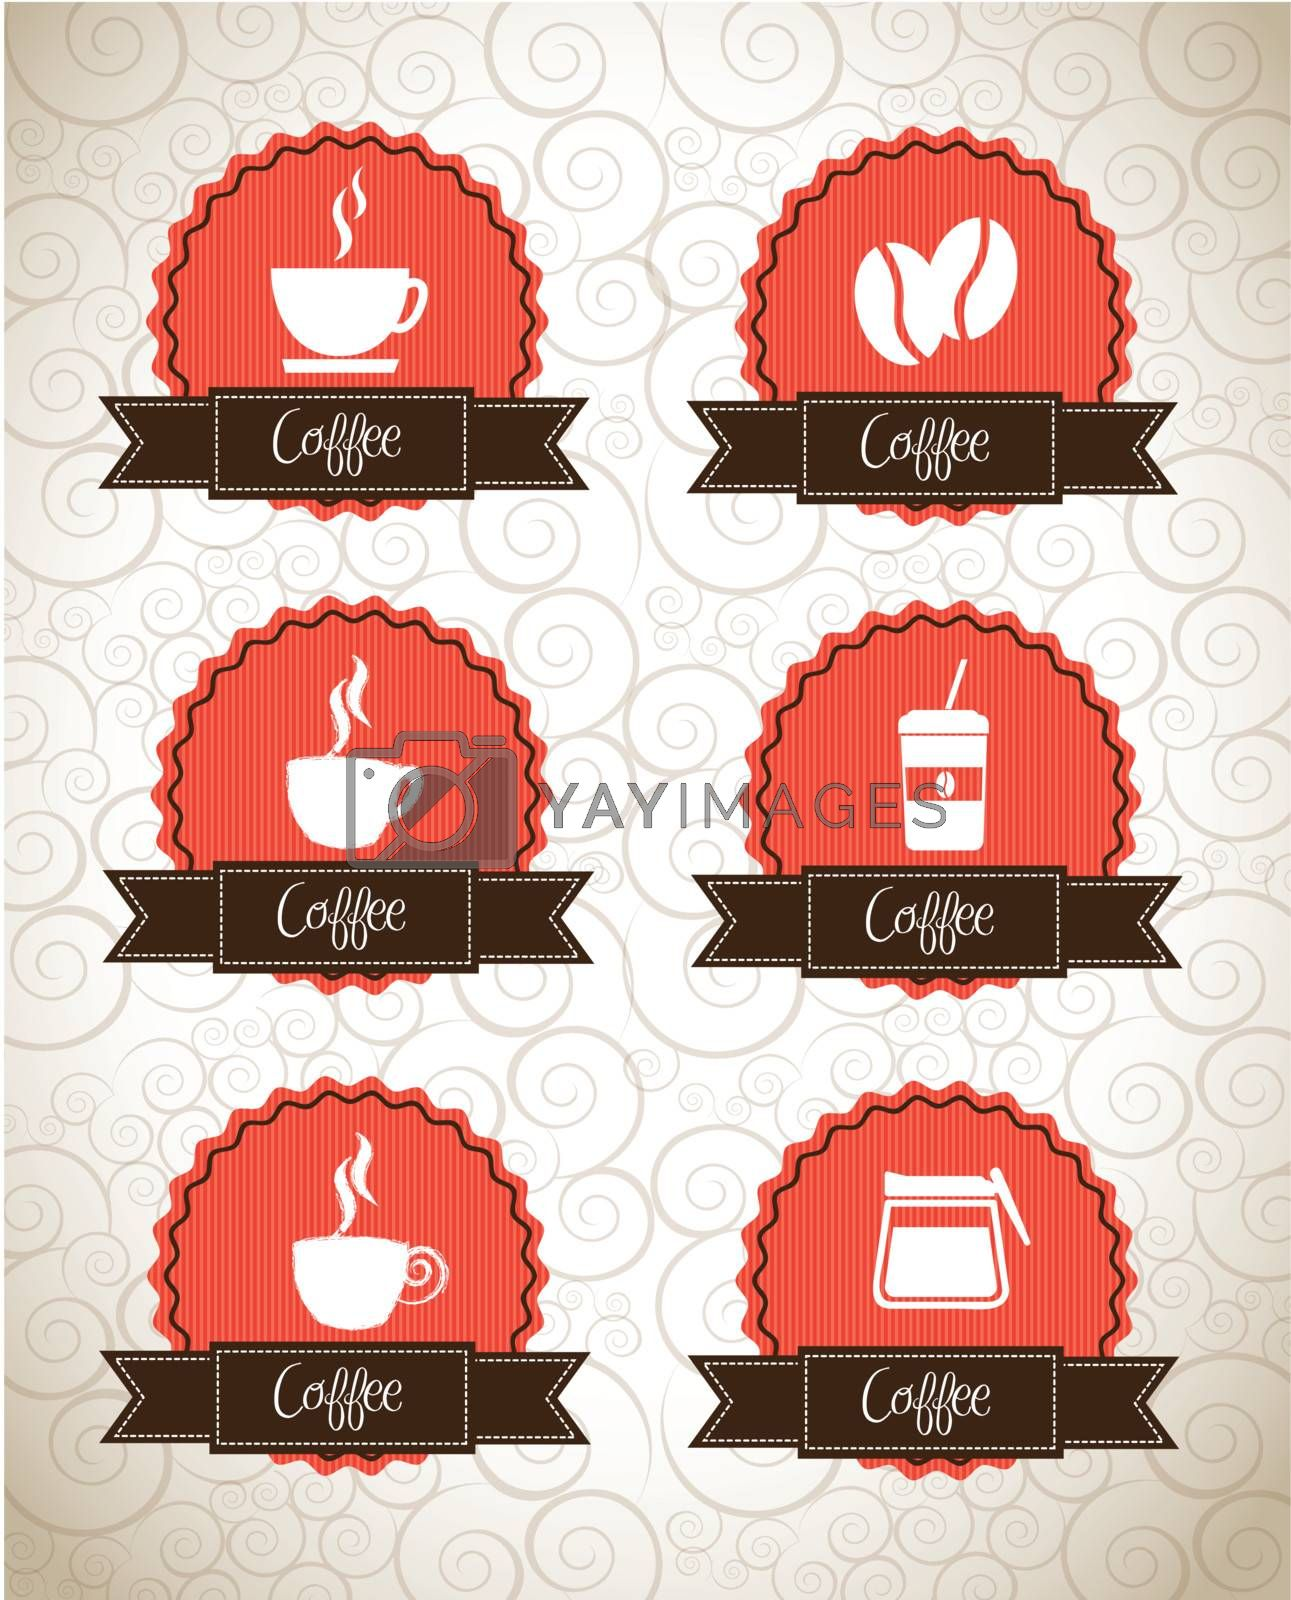 Coffe icons over seal and vintage background vector illustration